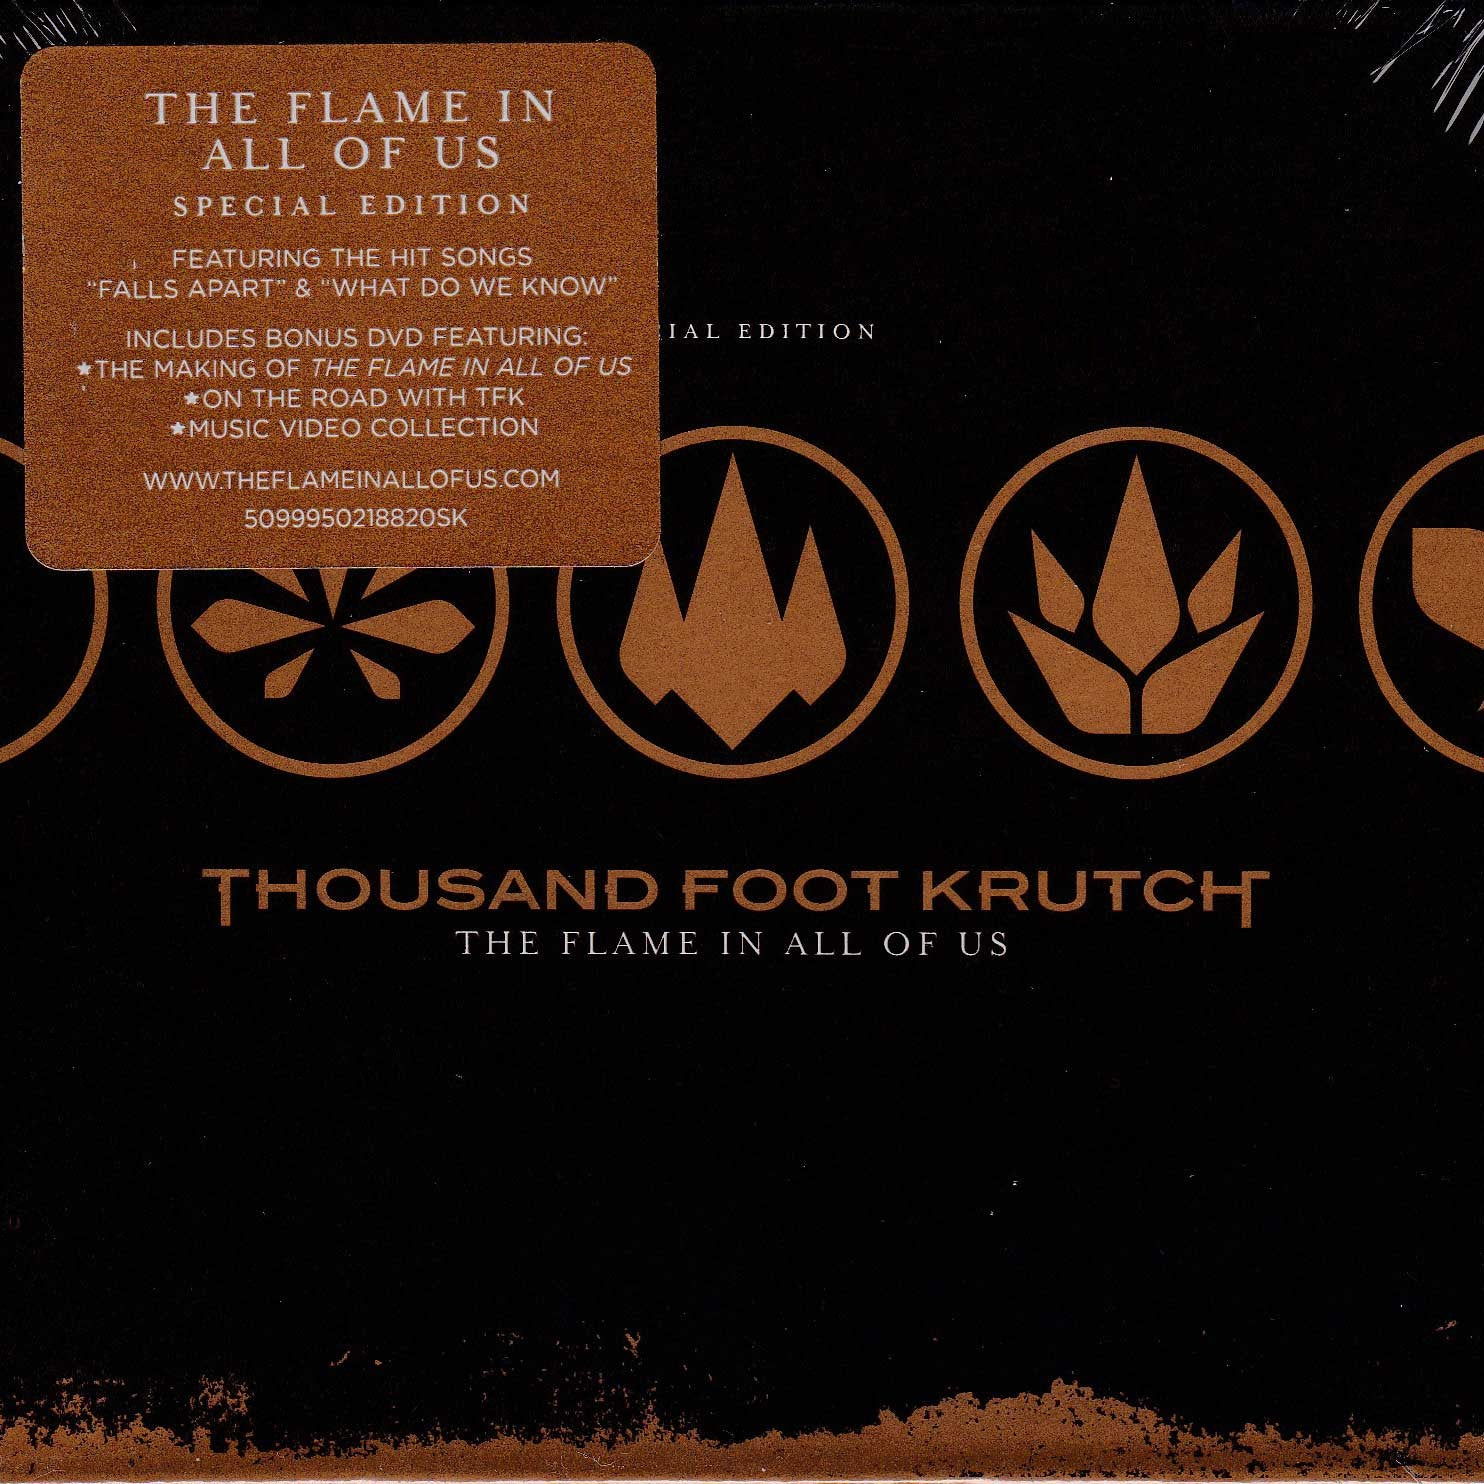 The Flame In All Of Us Special Edition CD/DVD